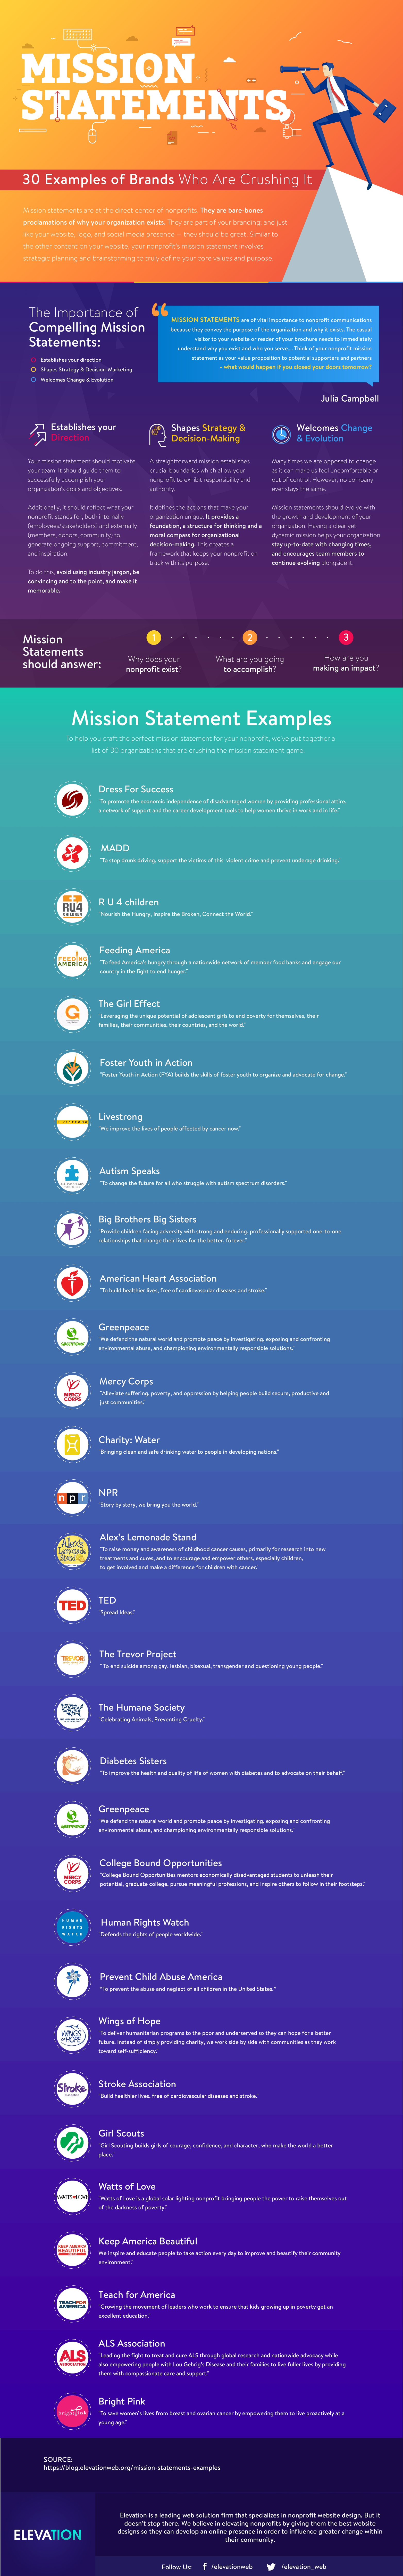 Compelling Mission Statements: Non-Profit Sector - Infographic